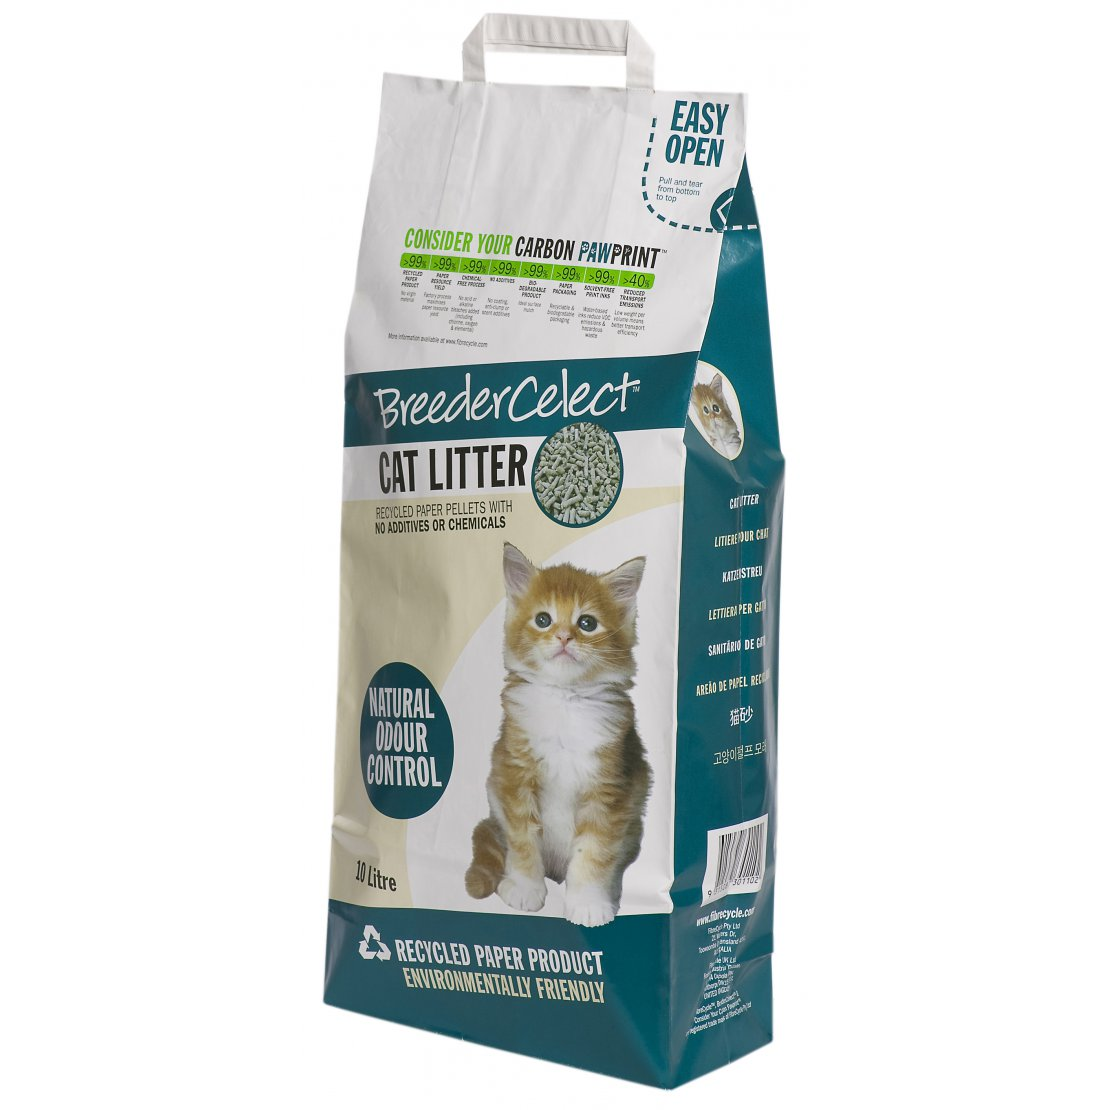 ONLY AVAILABLE FOR LOCAL DELIVERY. Breeder Celect Cat Litter 20L